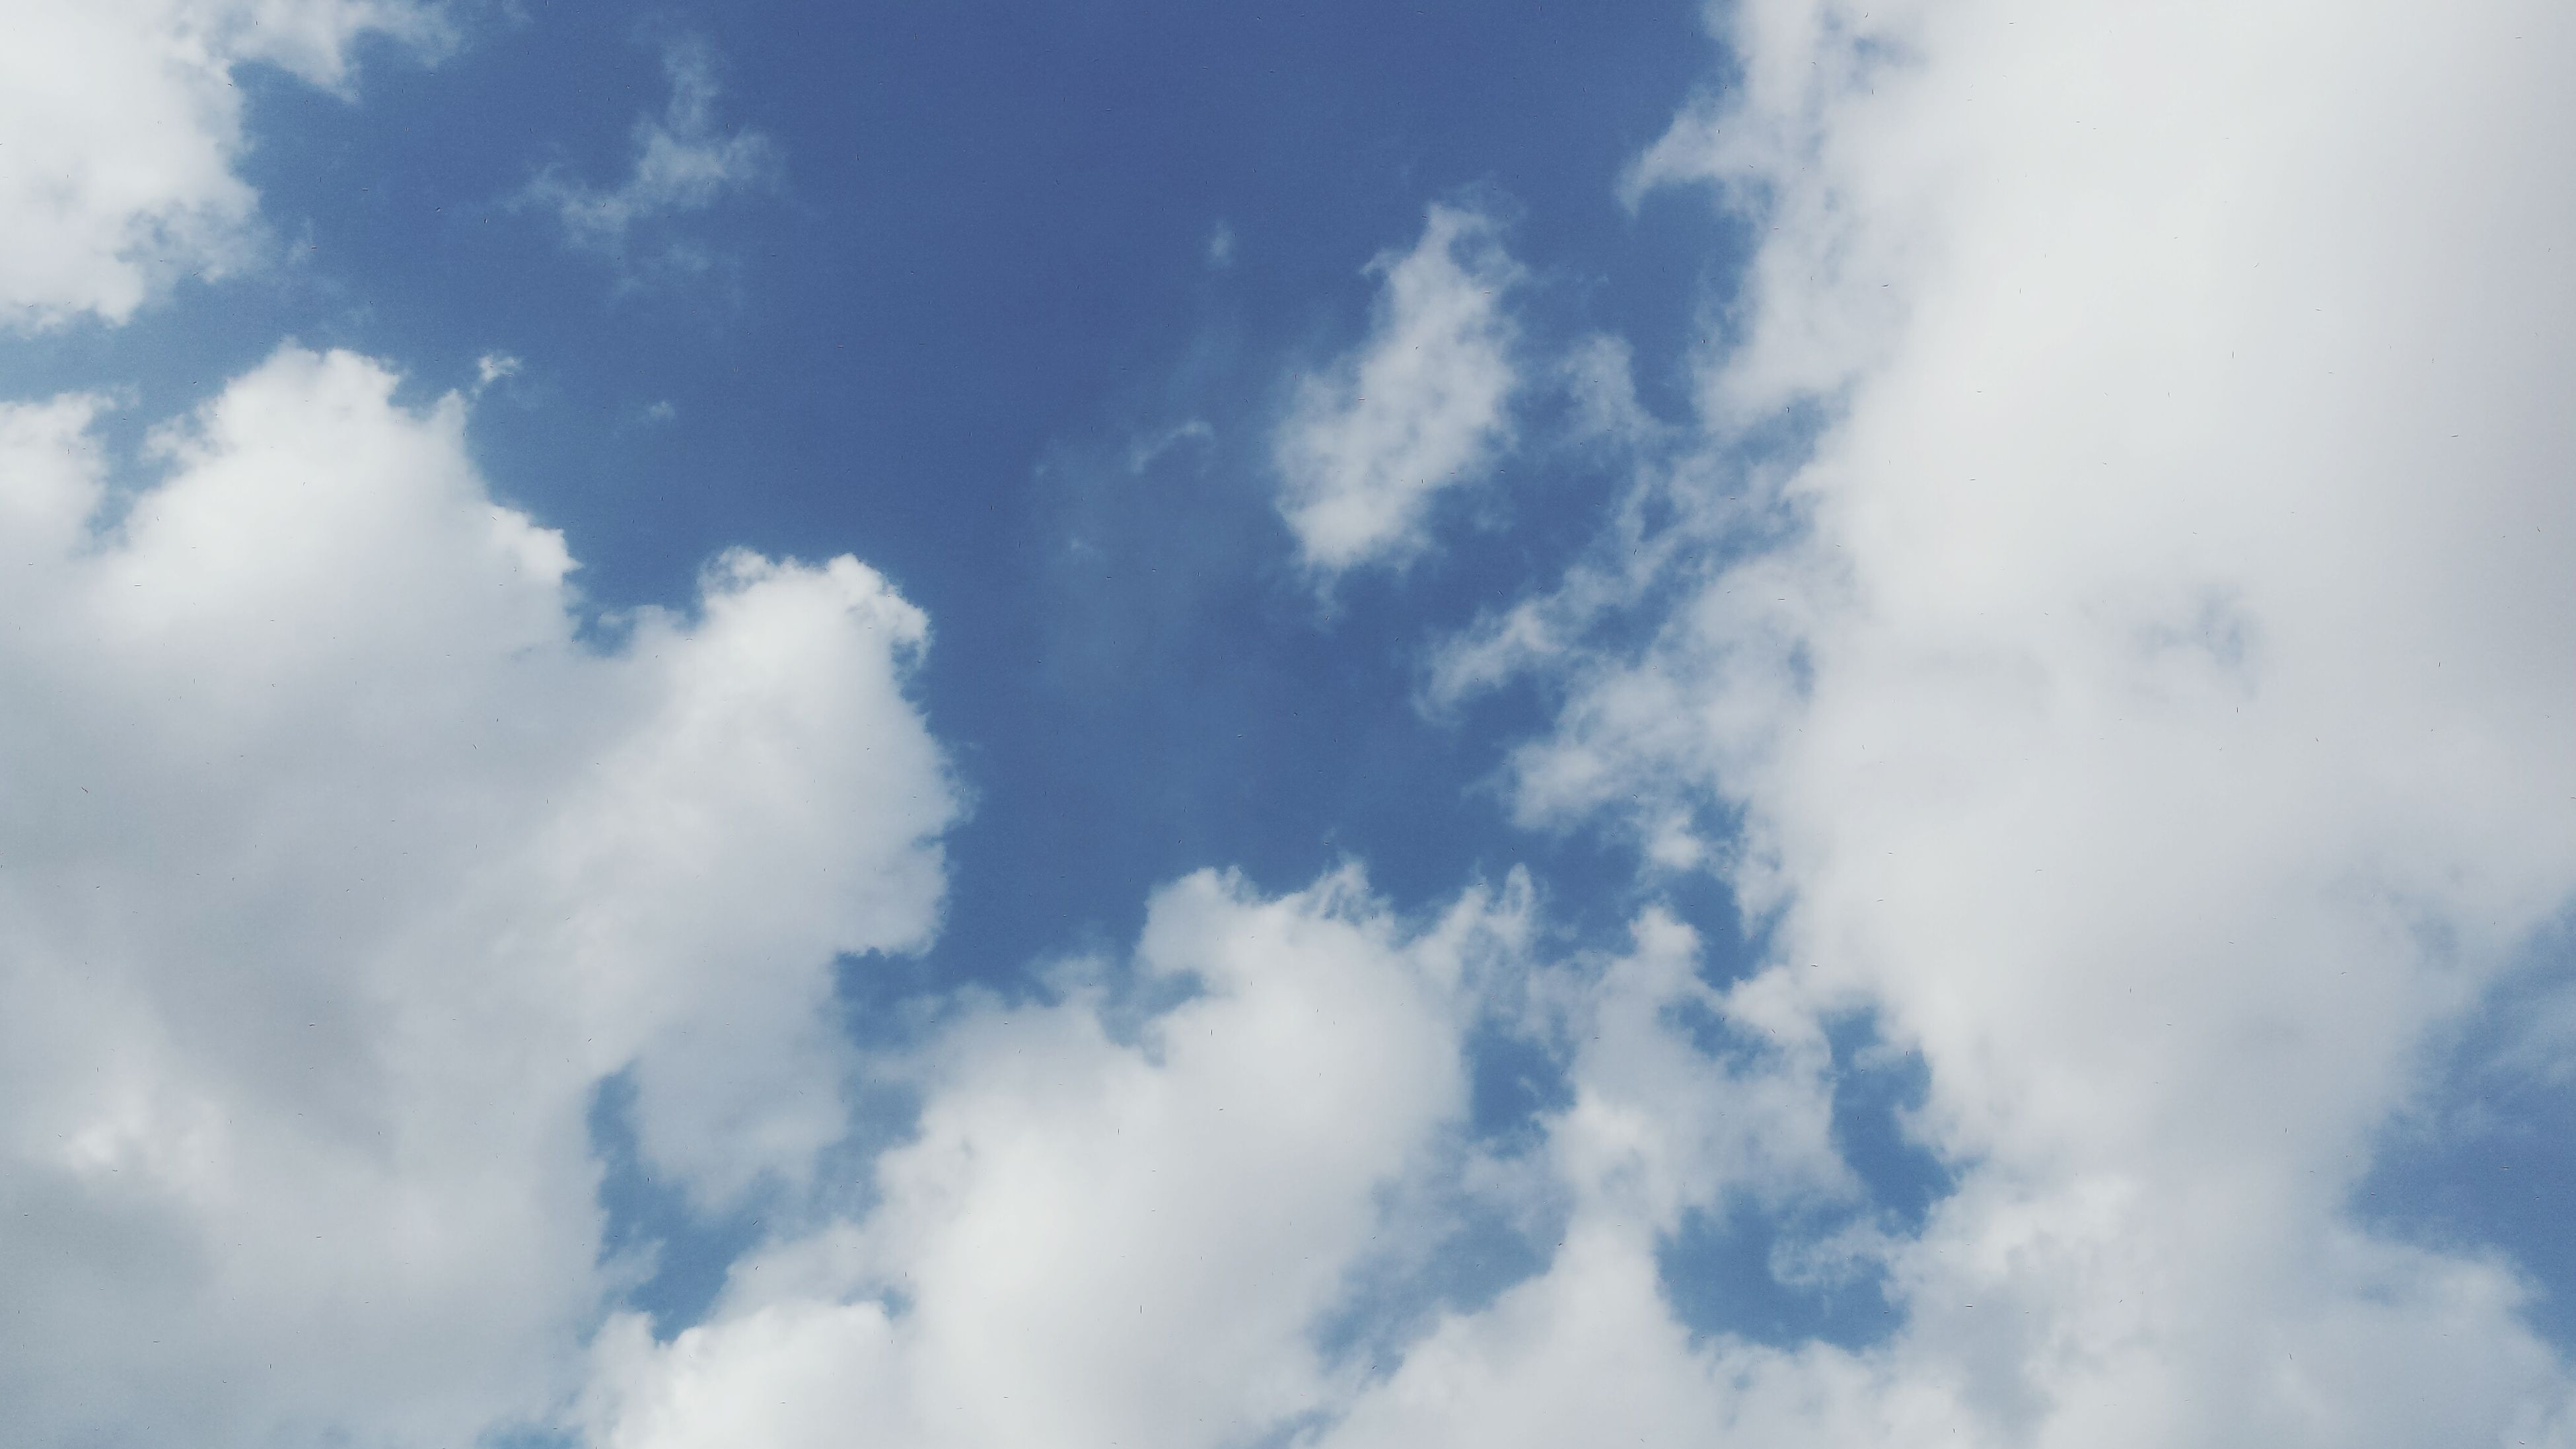 cloud - sky, sky, low angle view, nature, backgrounds, day, full frame, no people, outdoors, beauty in nature, scenics, sky only